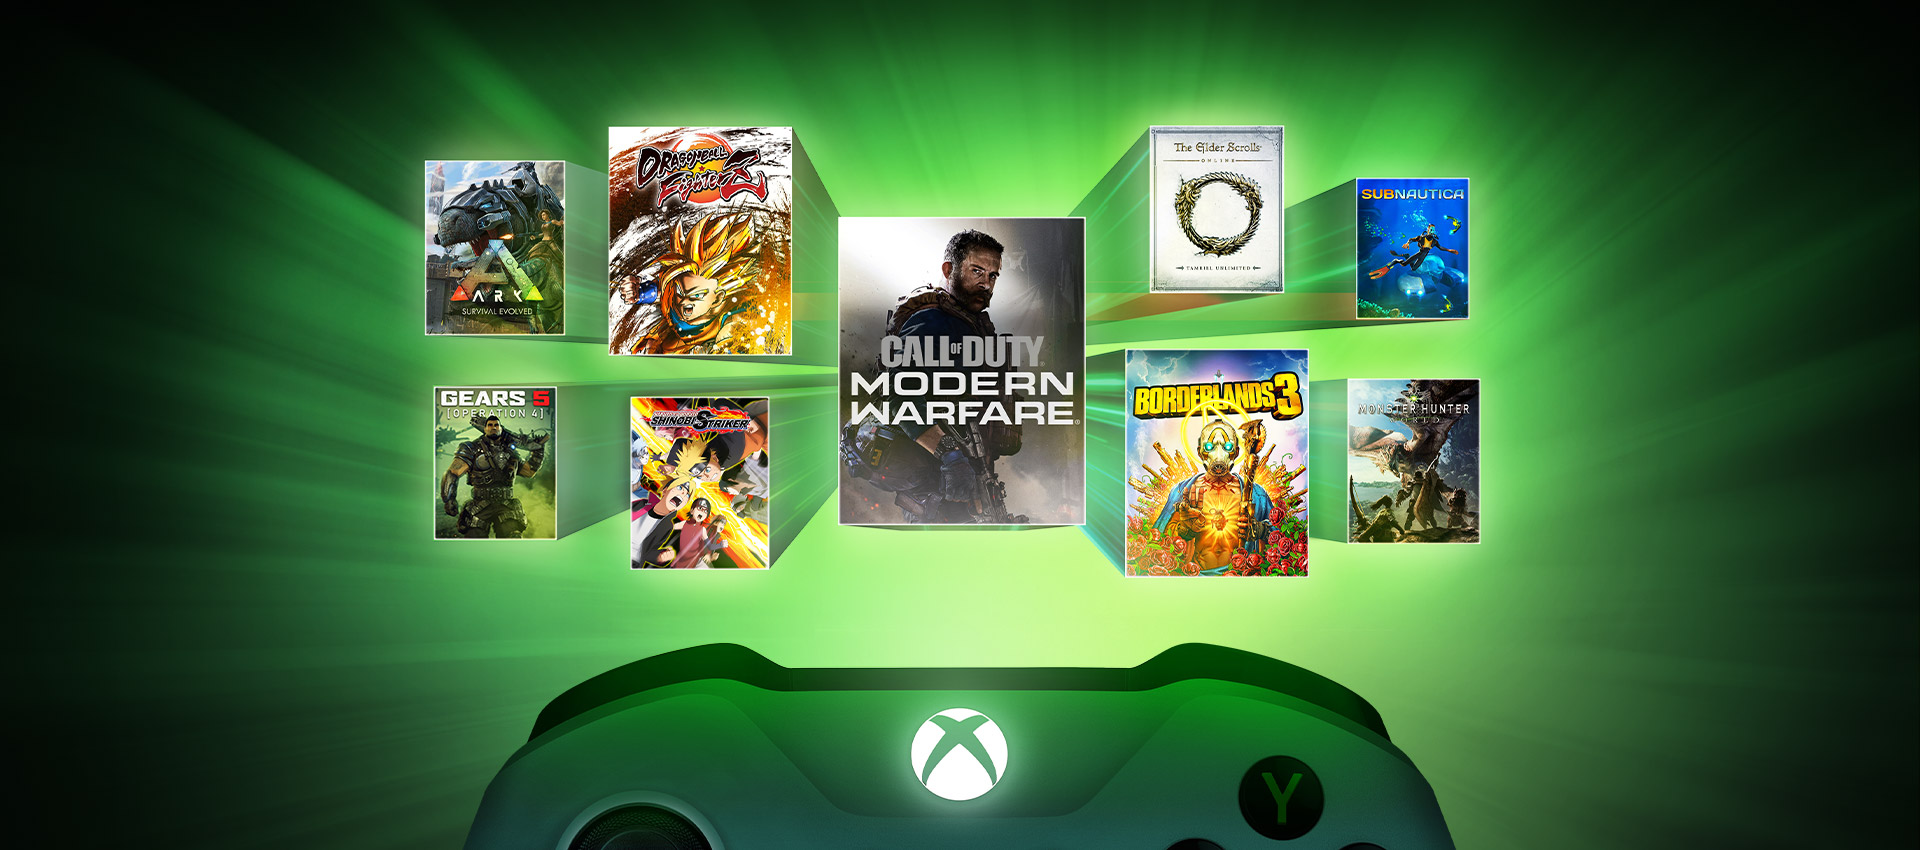 A collection of games on a green background, including Call of Duty: Modern Warfare, Borderlands 3, ARK: Survival Evolved, Gears 5, Monster Hunter World and Elder Scrolls Online: Tamriel Unlimited.